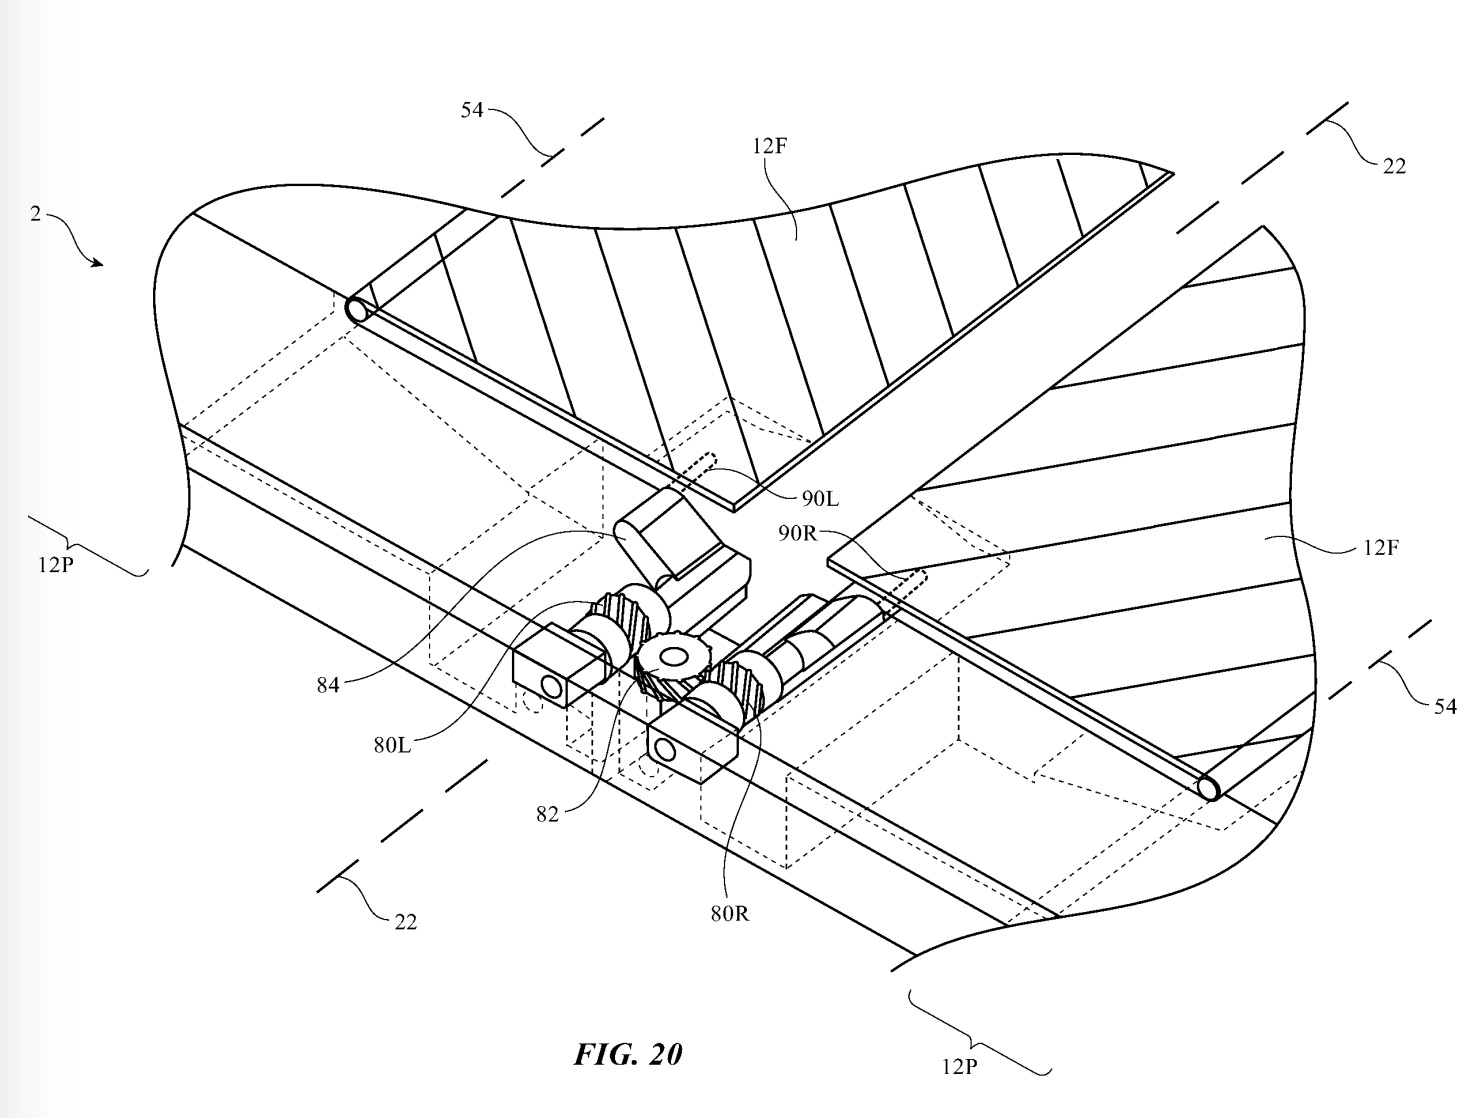 Apple Patents Foldable Device With Movable Flaps to